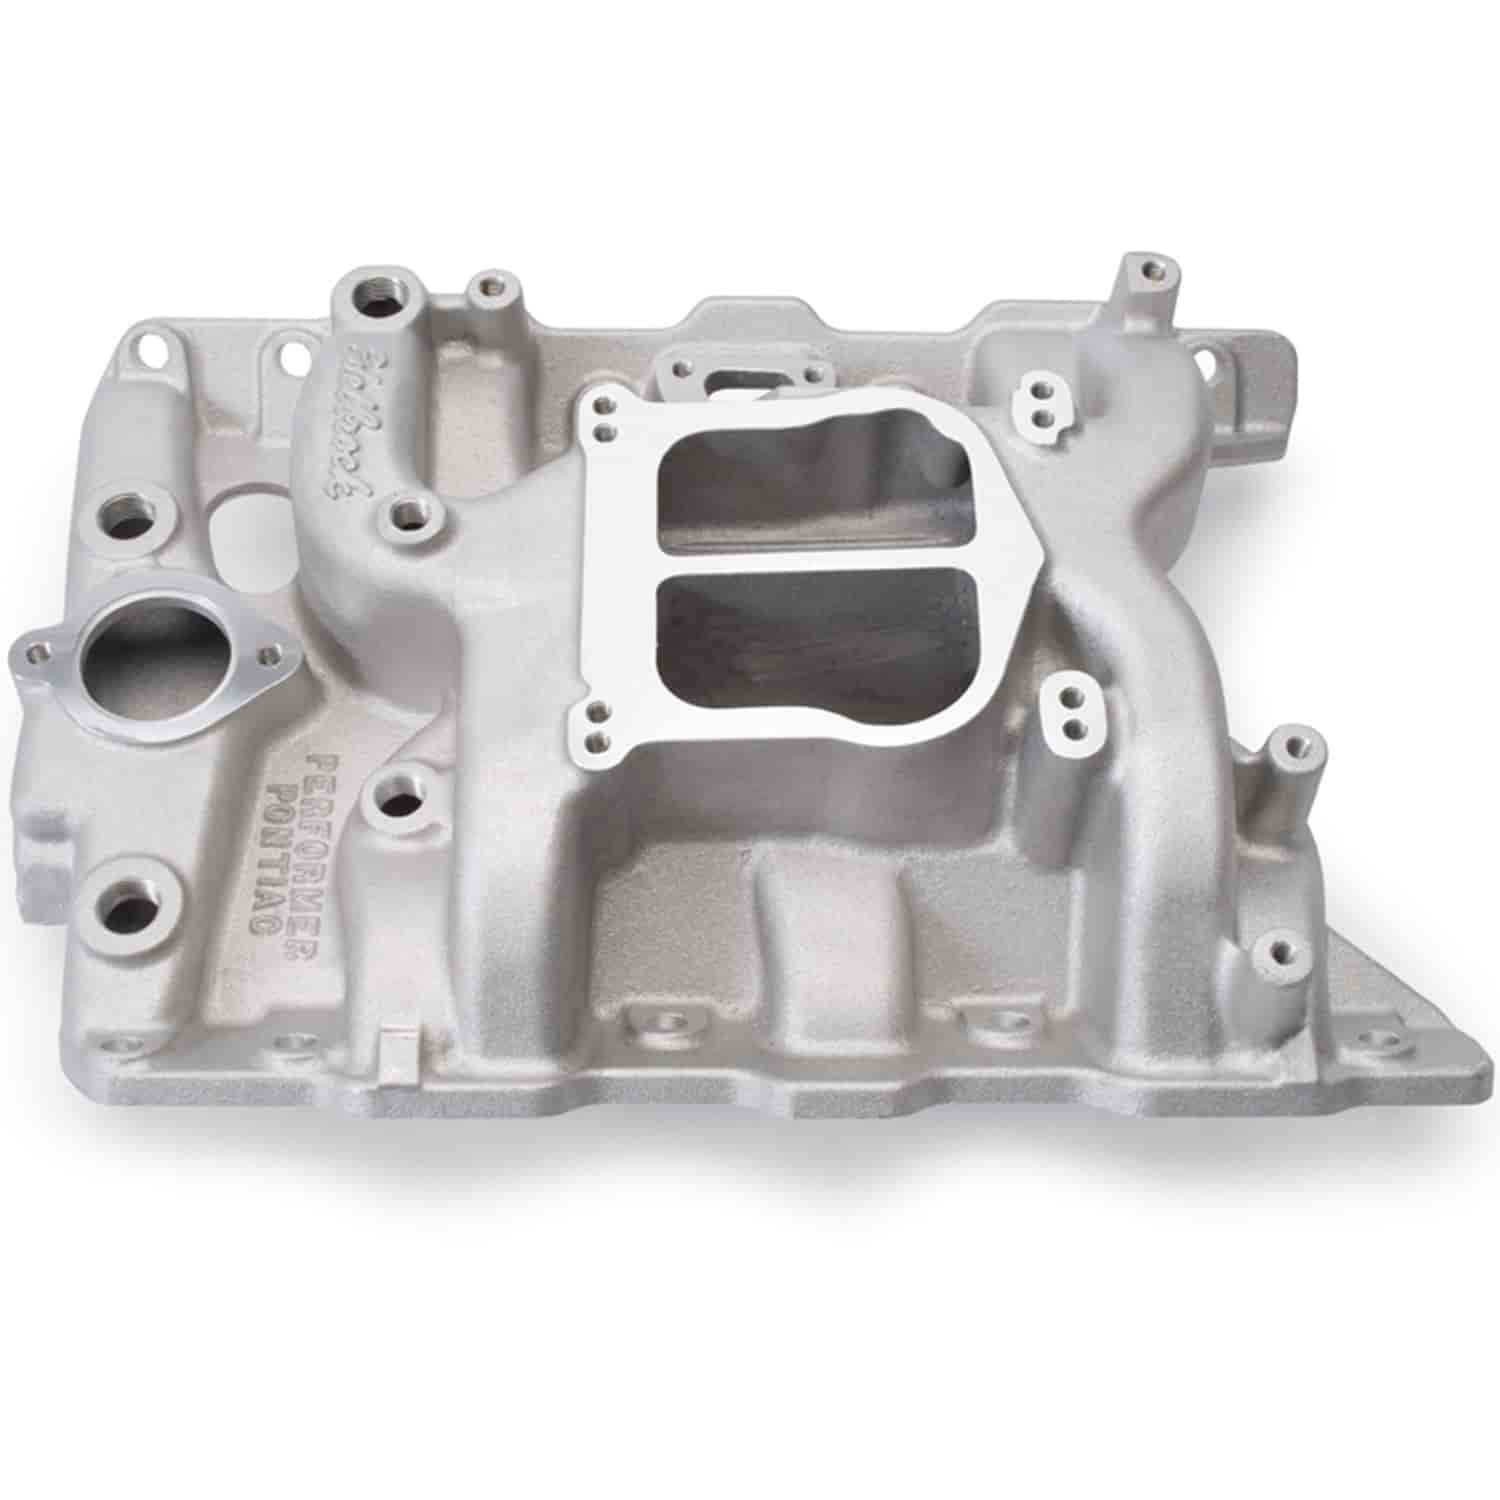 Edelbrock 3756 - Edelbrock Performer Manifolds for Pontiac